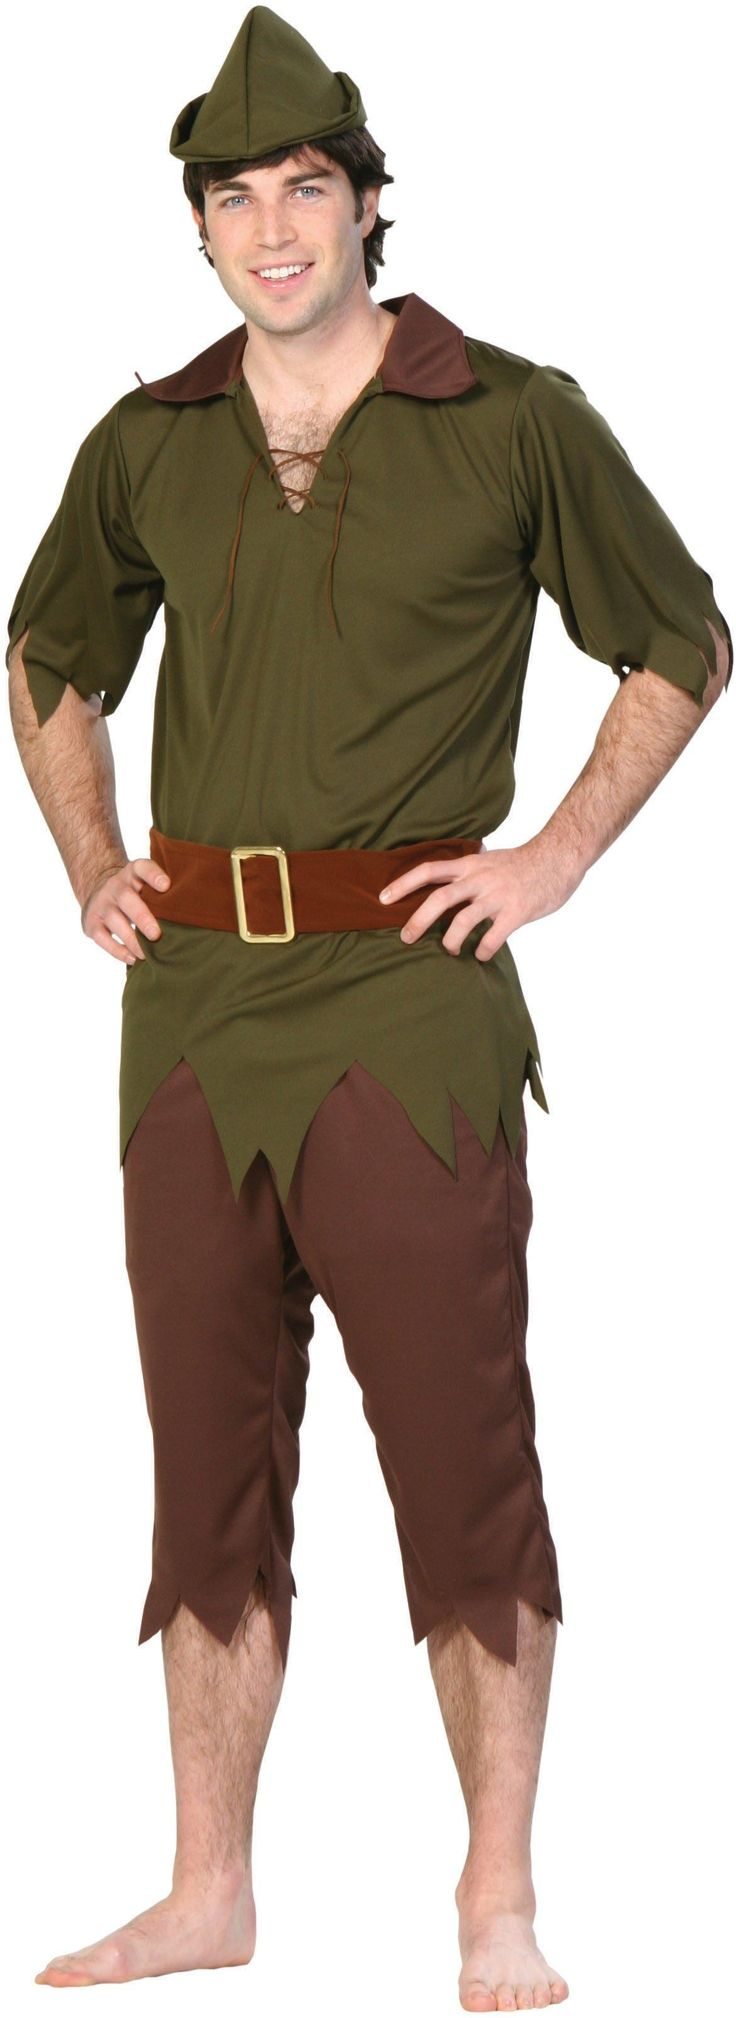 Peter Pan Adult Costume from Buycostumes.com